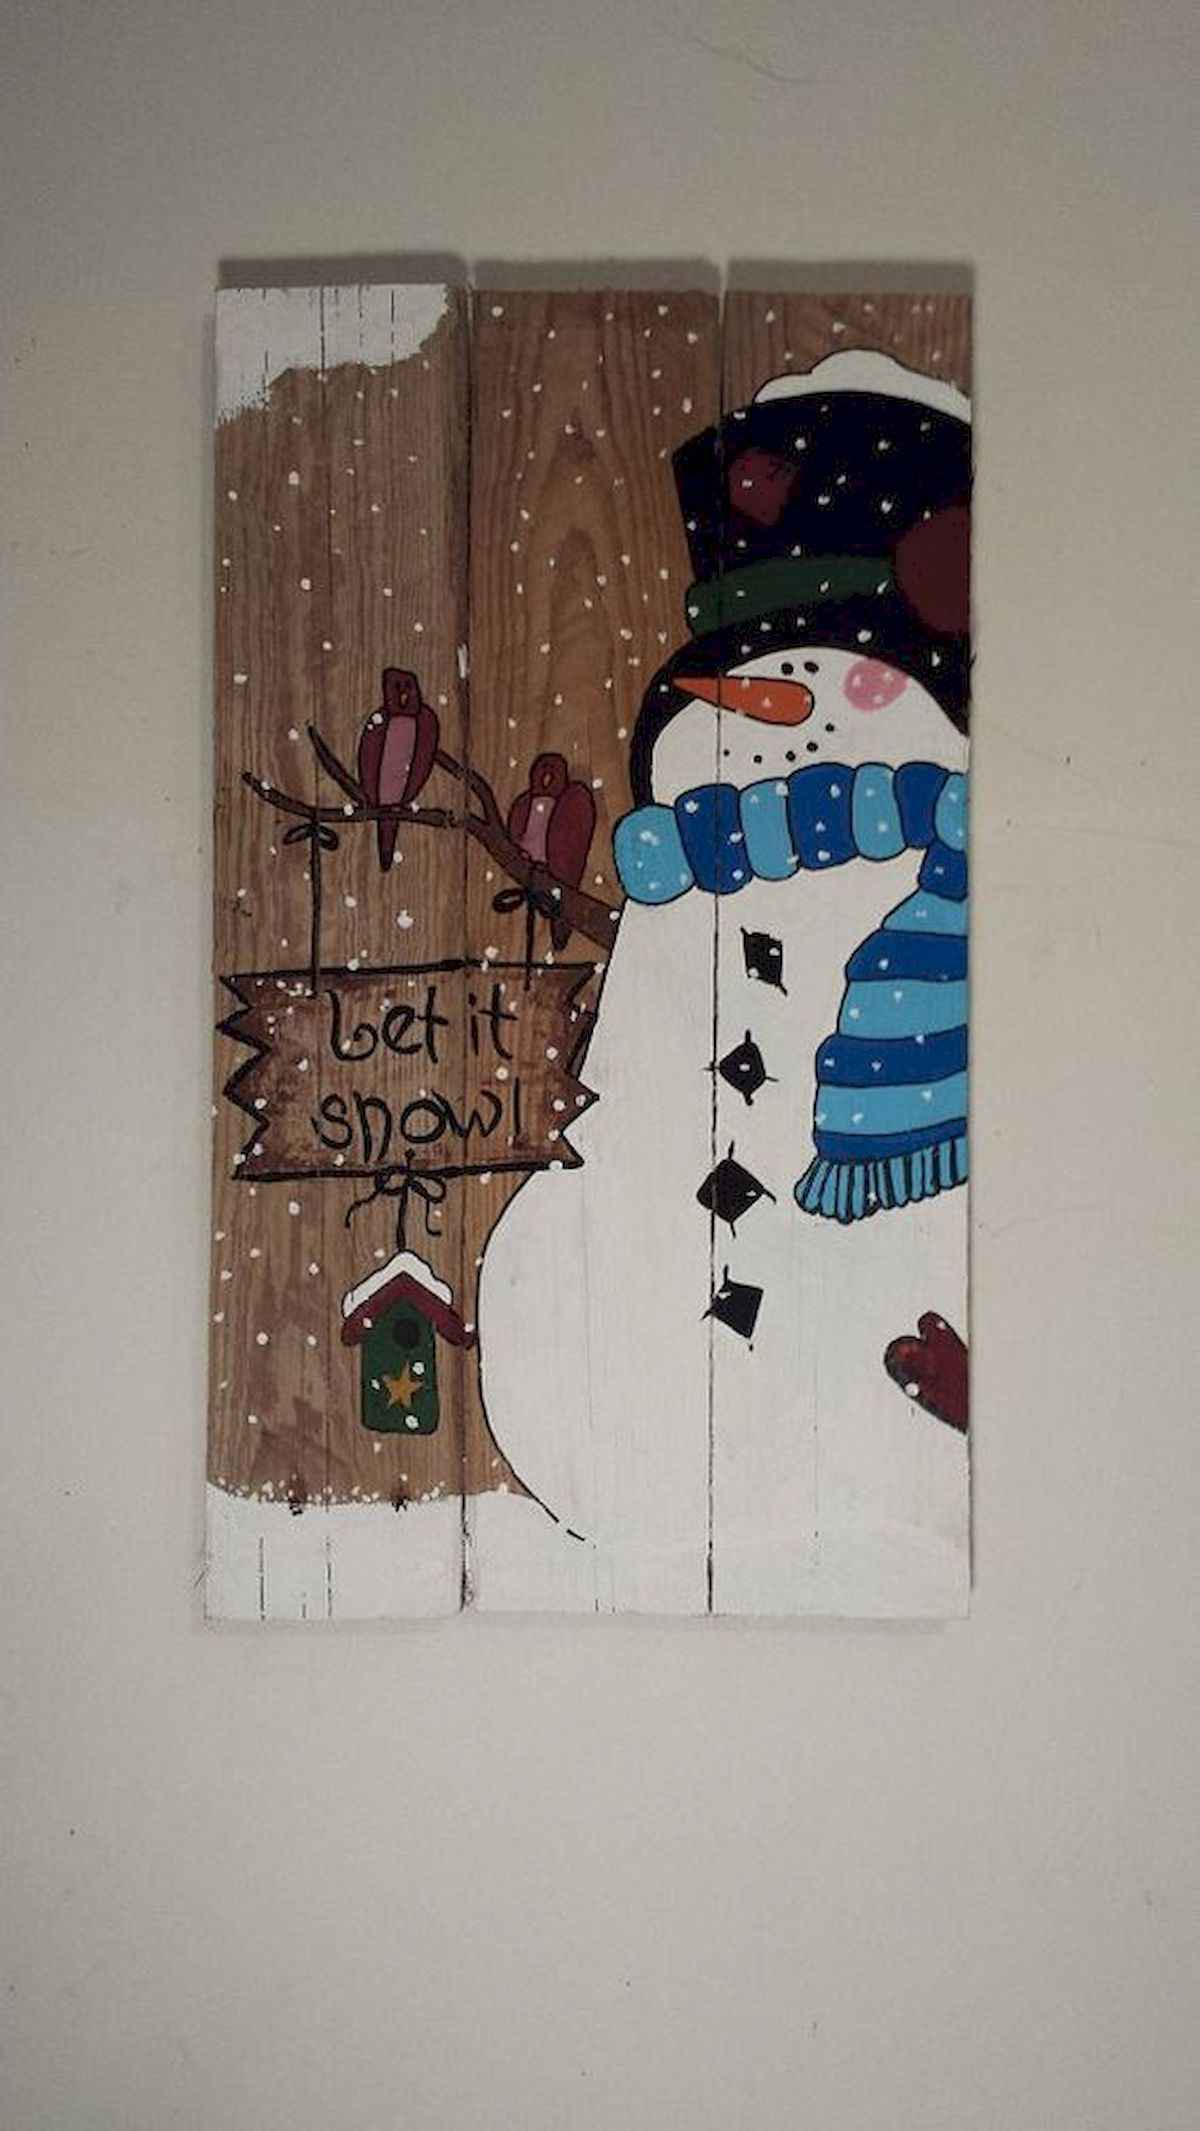 60 awesome wall art christmas ideas decorations (49)